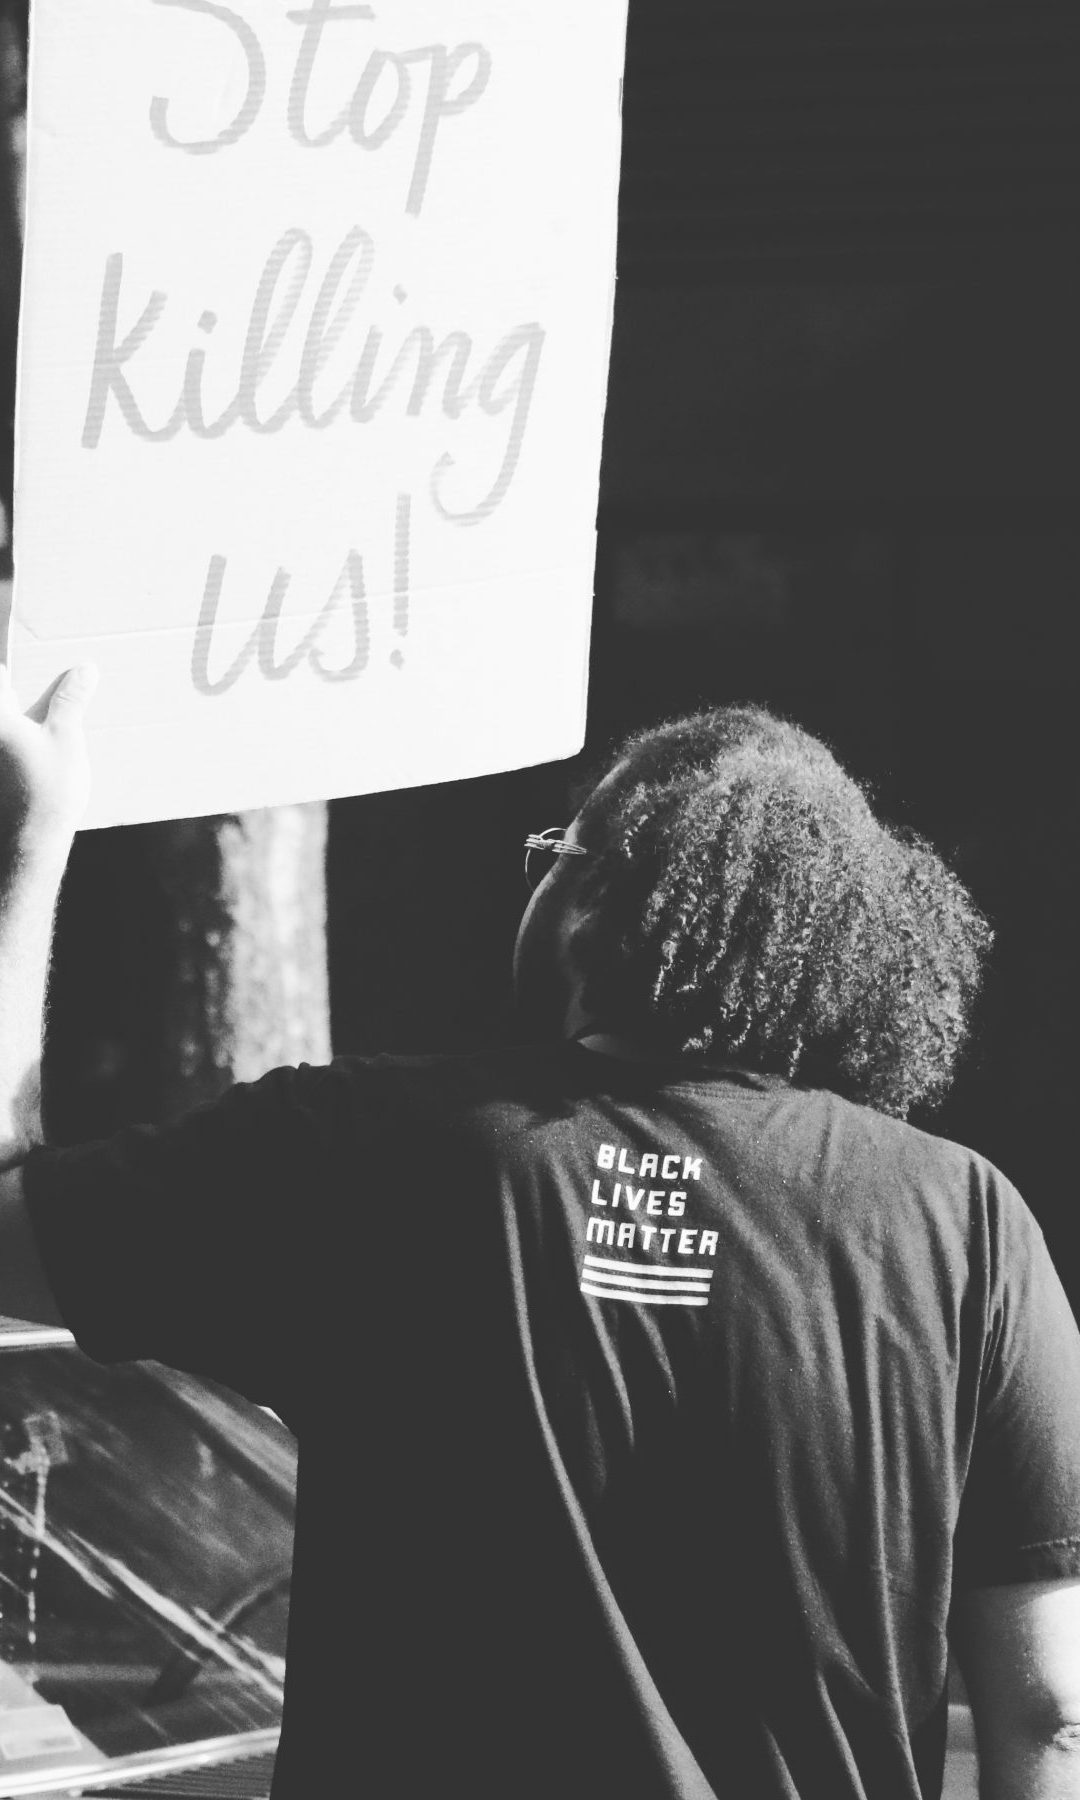 August 9, 2018: Week 19 – A Photo Gallery of Black Lives Matter Sacramento